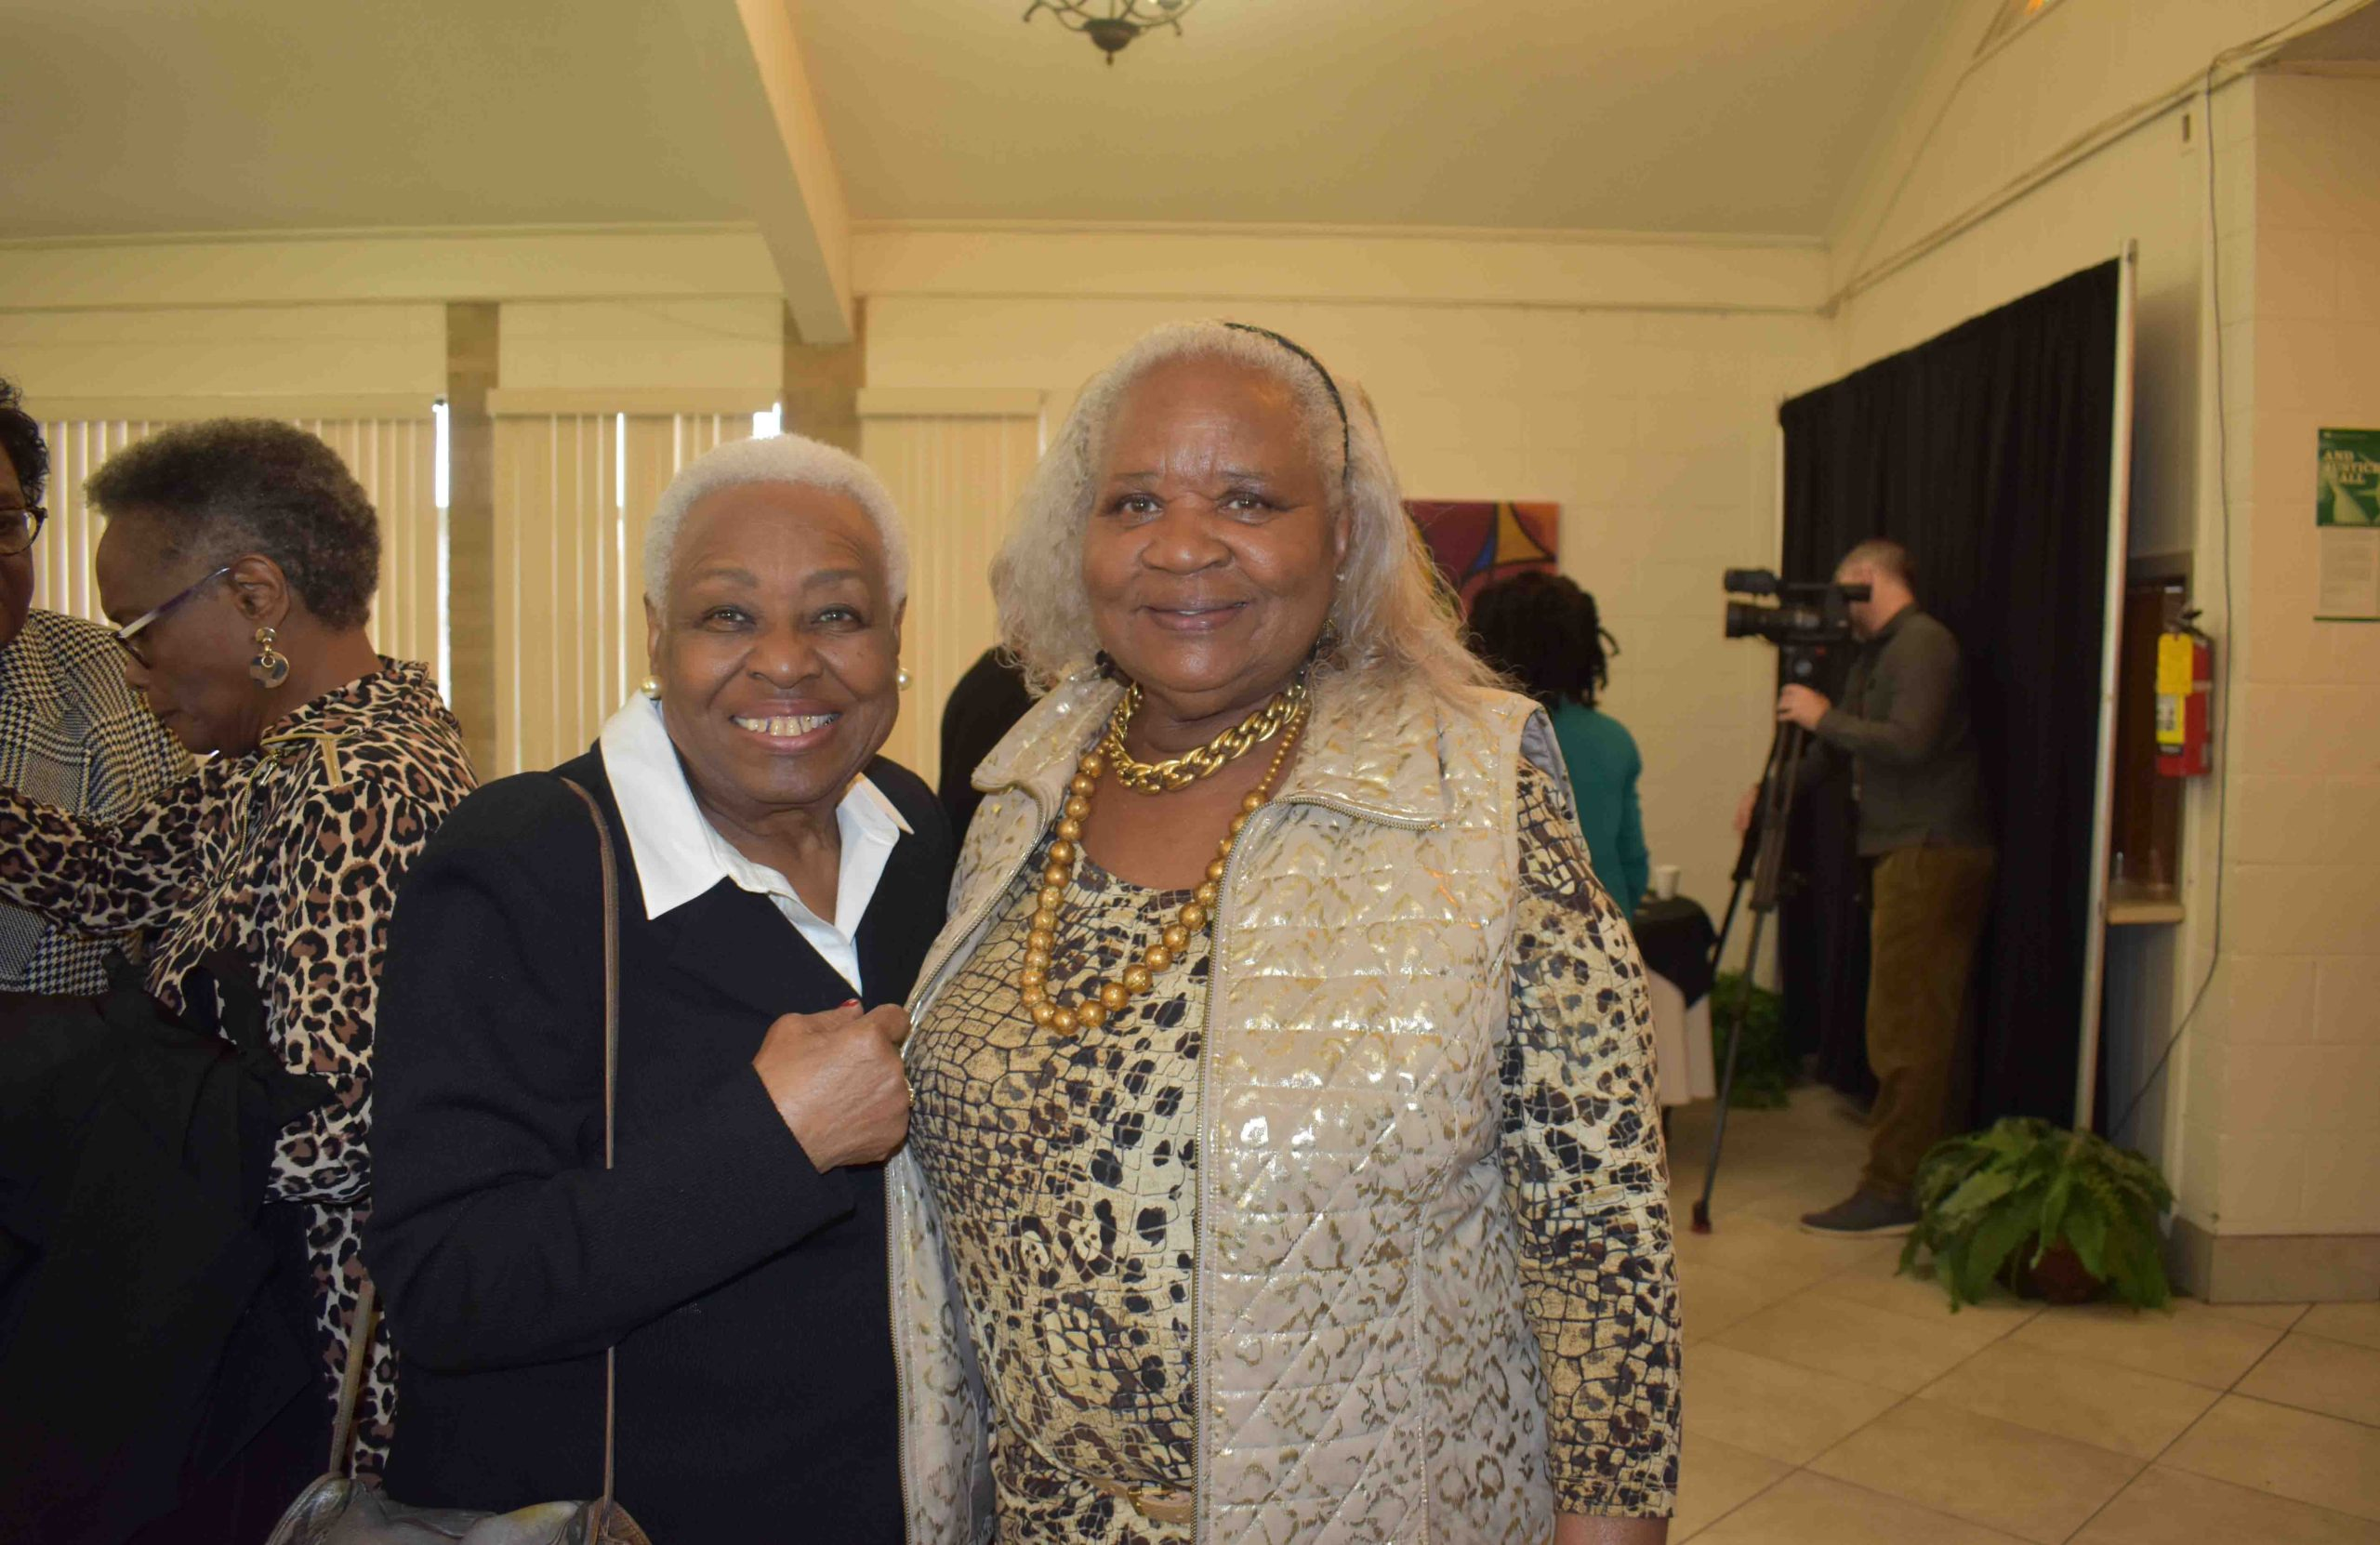 Hon. Irma Hunter Brown (1st black female elected to the AR House of Representatives and the Arkansas Senate), LaVerne Goldsby